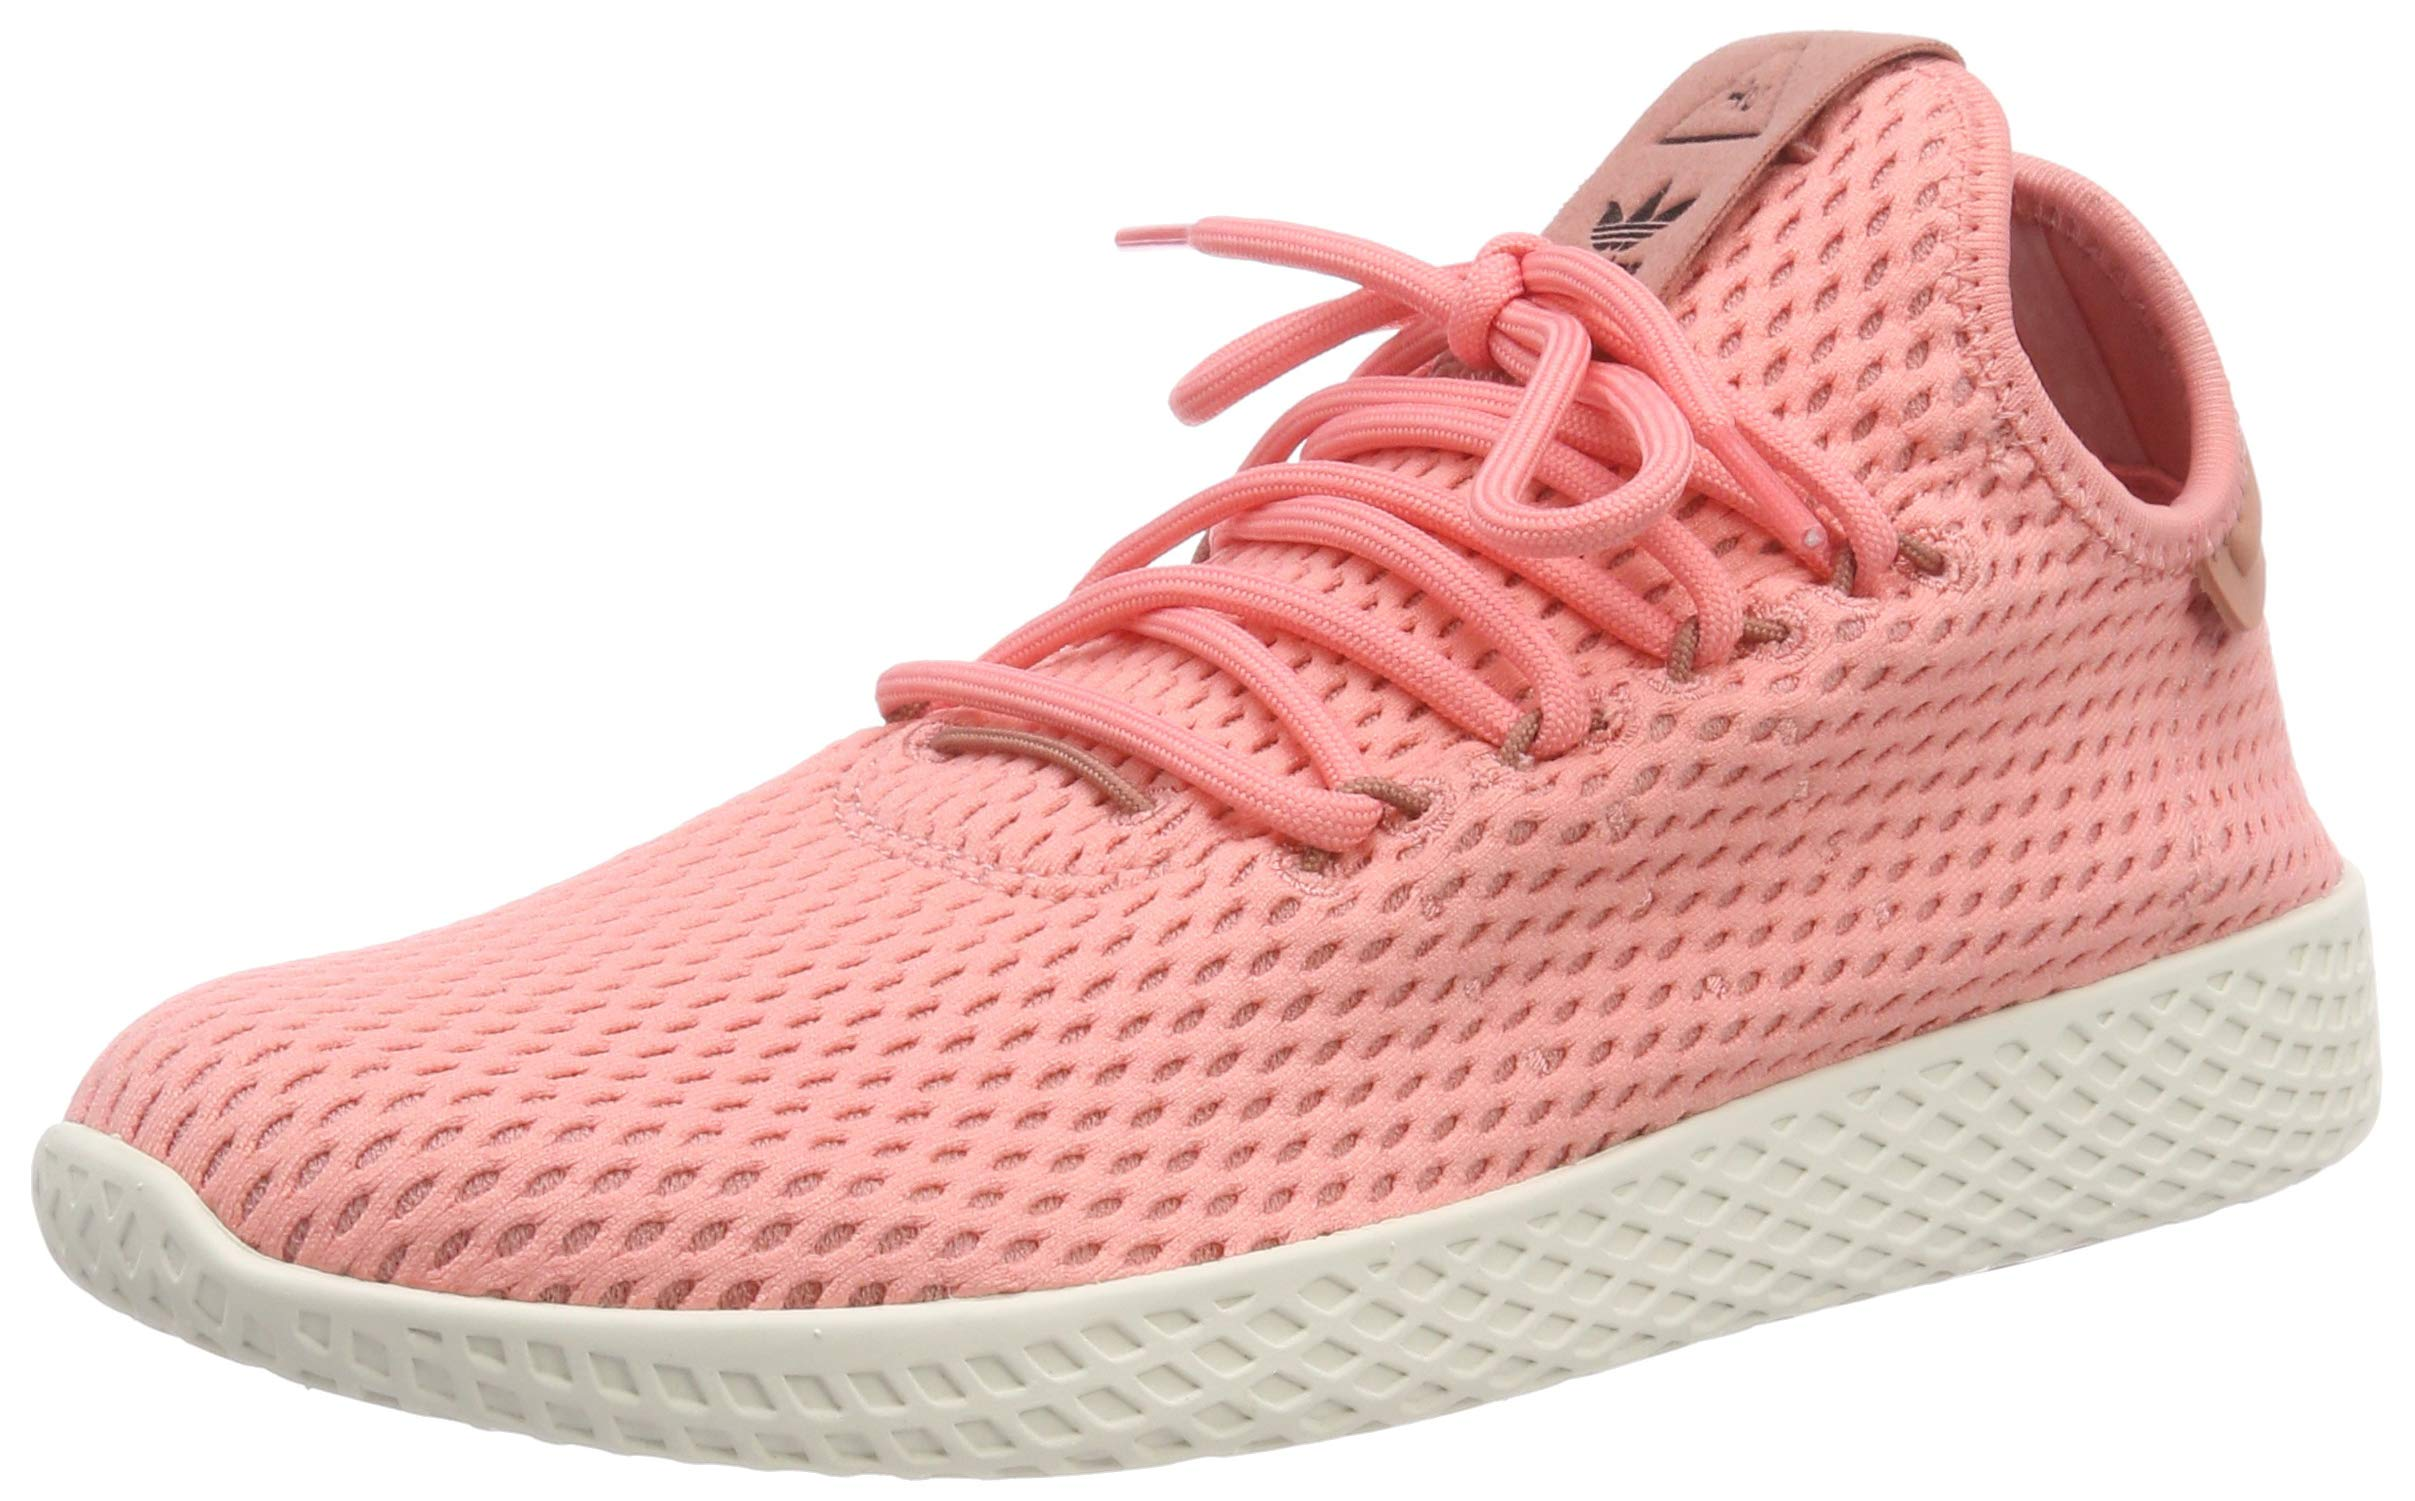 adidas Originals PW Tennis HU Mens Trainers Sneakers (UK 3.5 US 4 EU 36, Pink White BY8715)